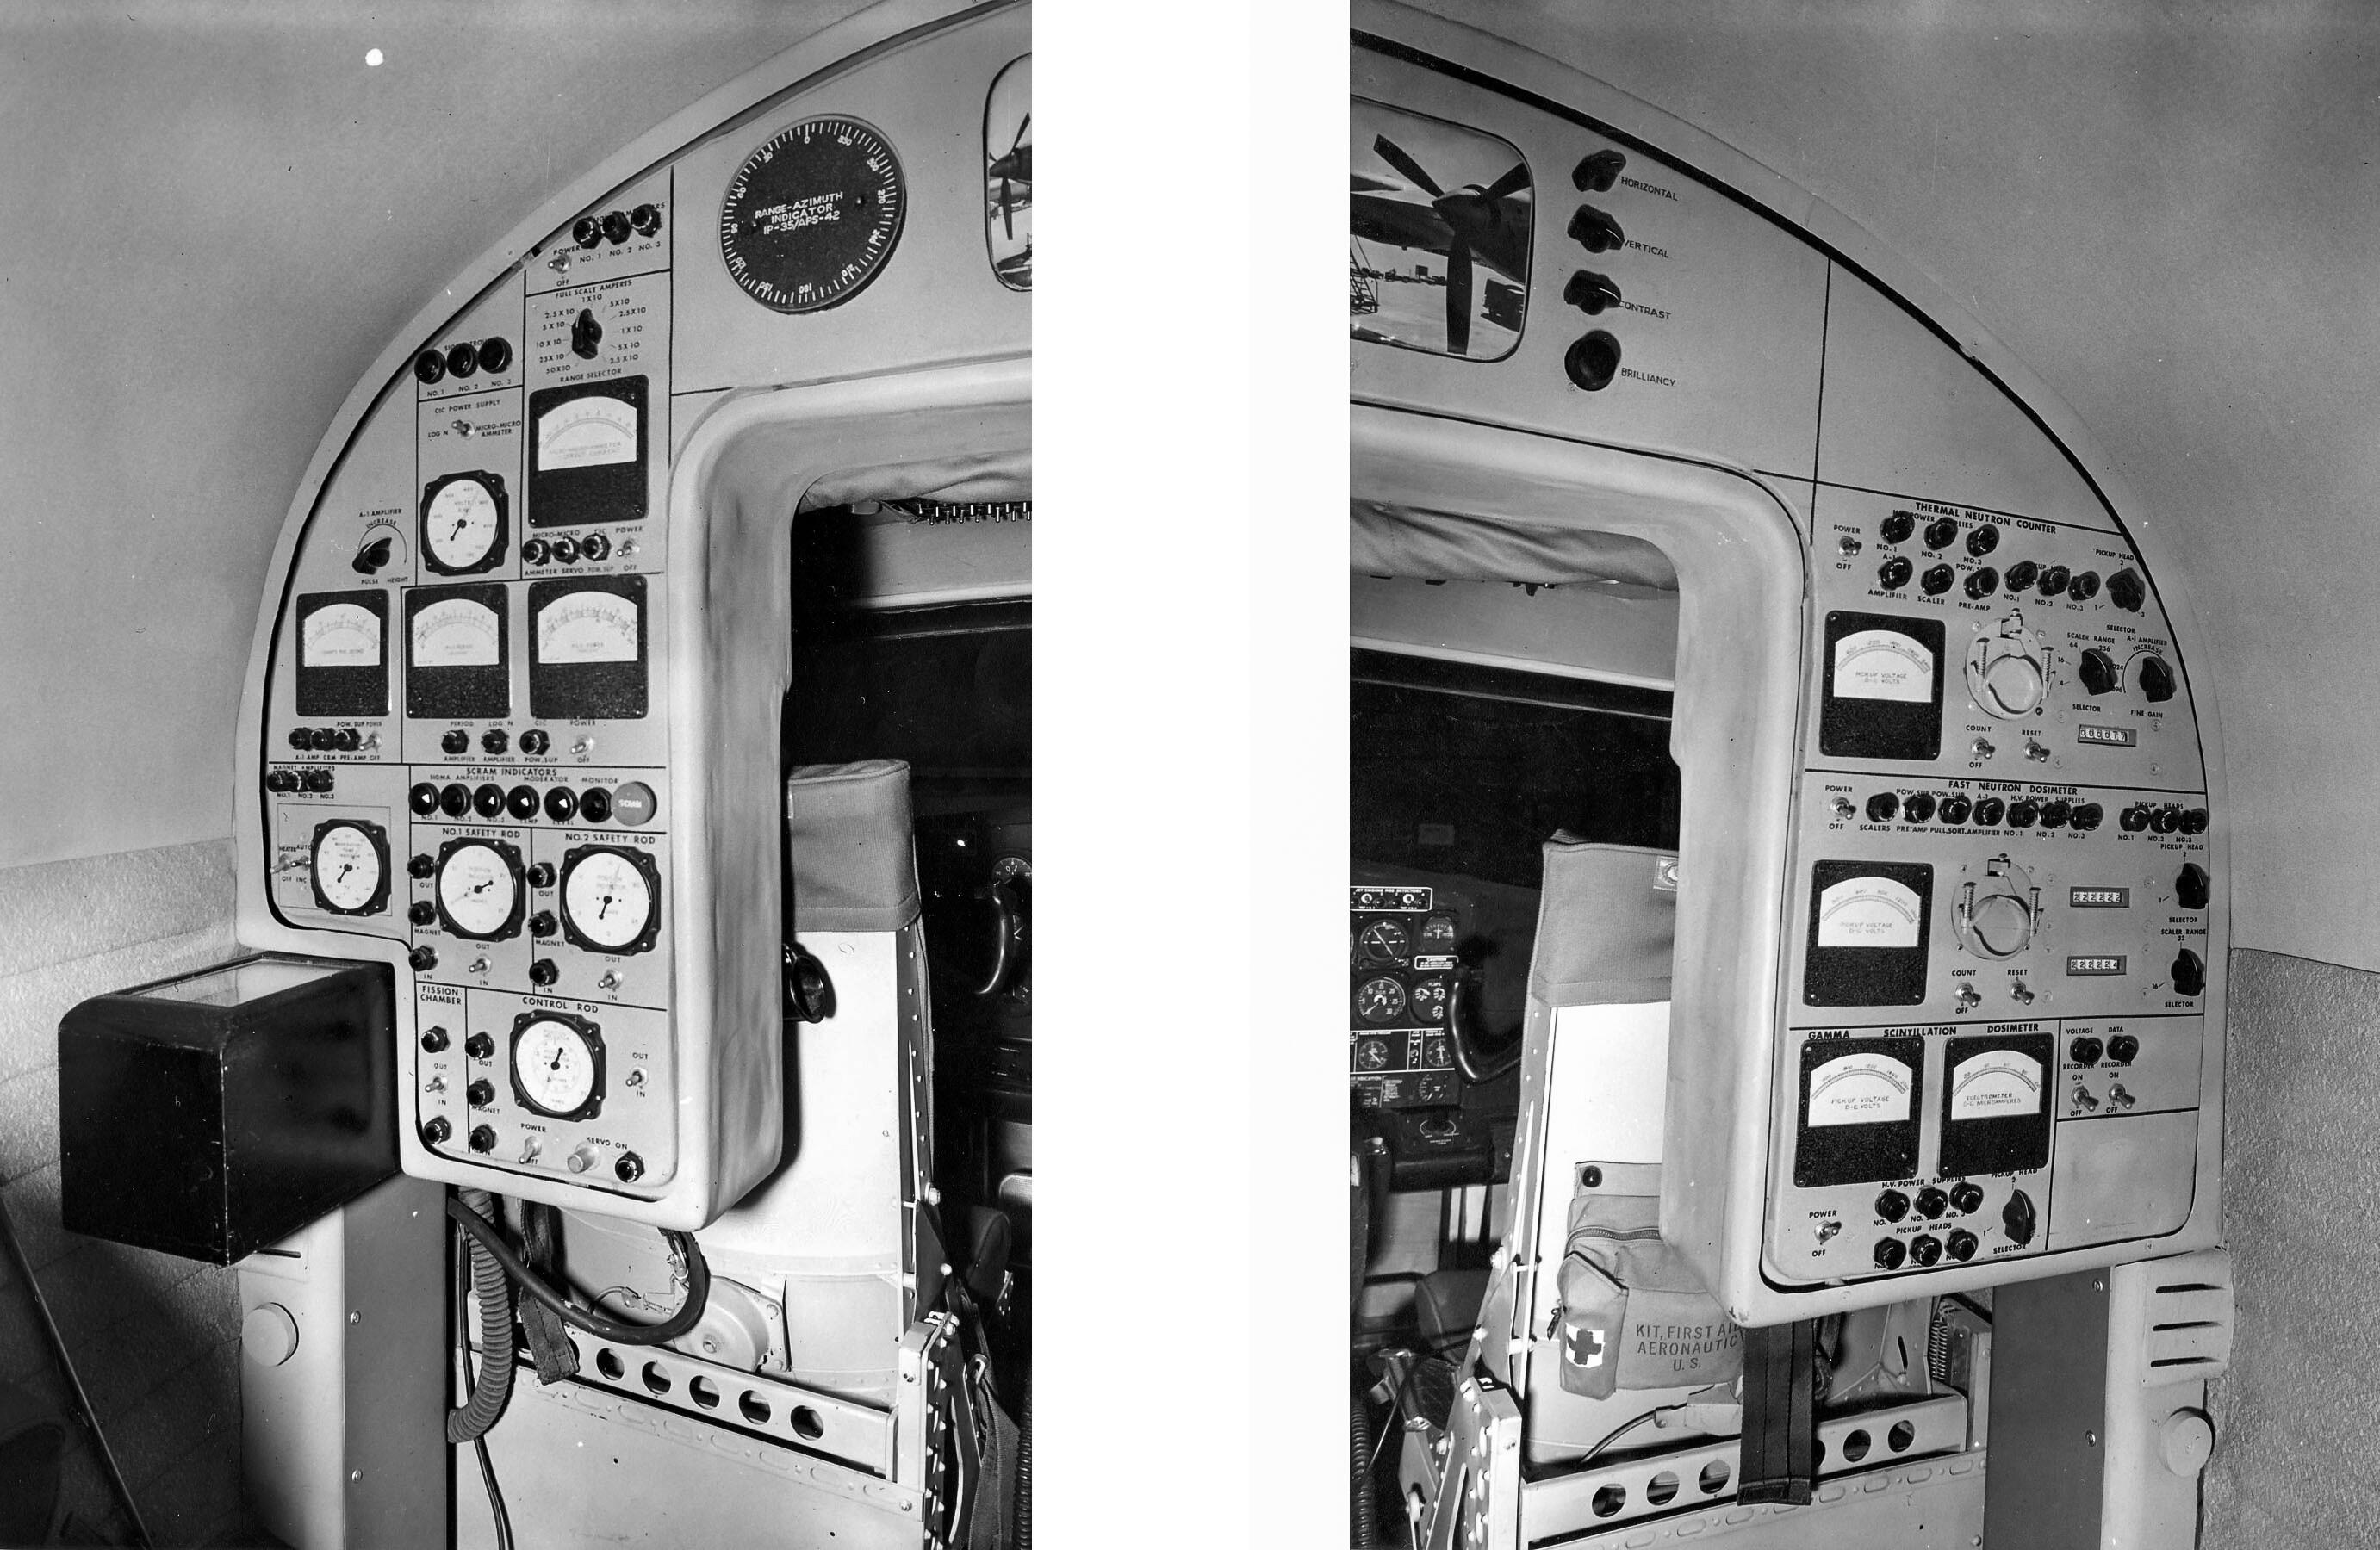 Nuclear engineer panels